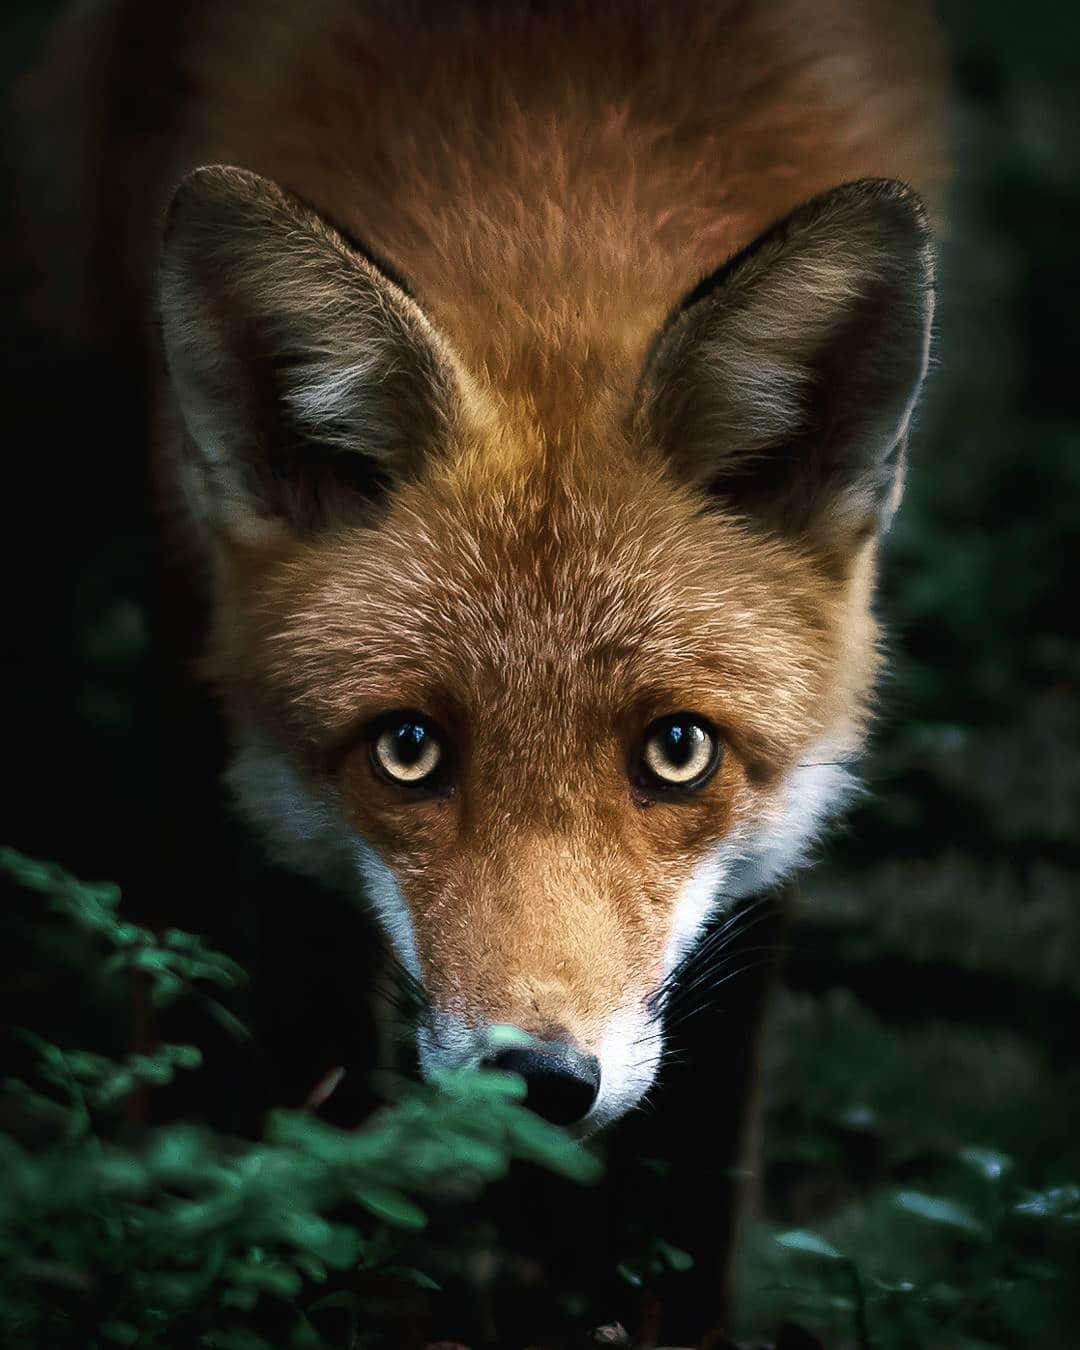 Photos Capture Finland's Fairytale Forest Animals In The Wild